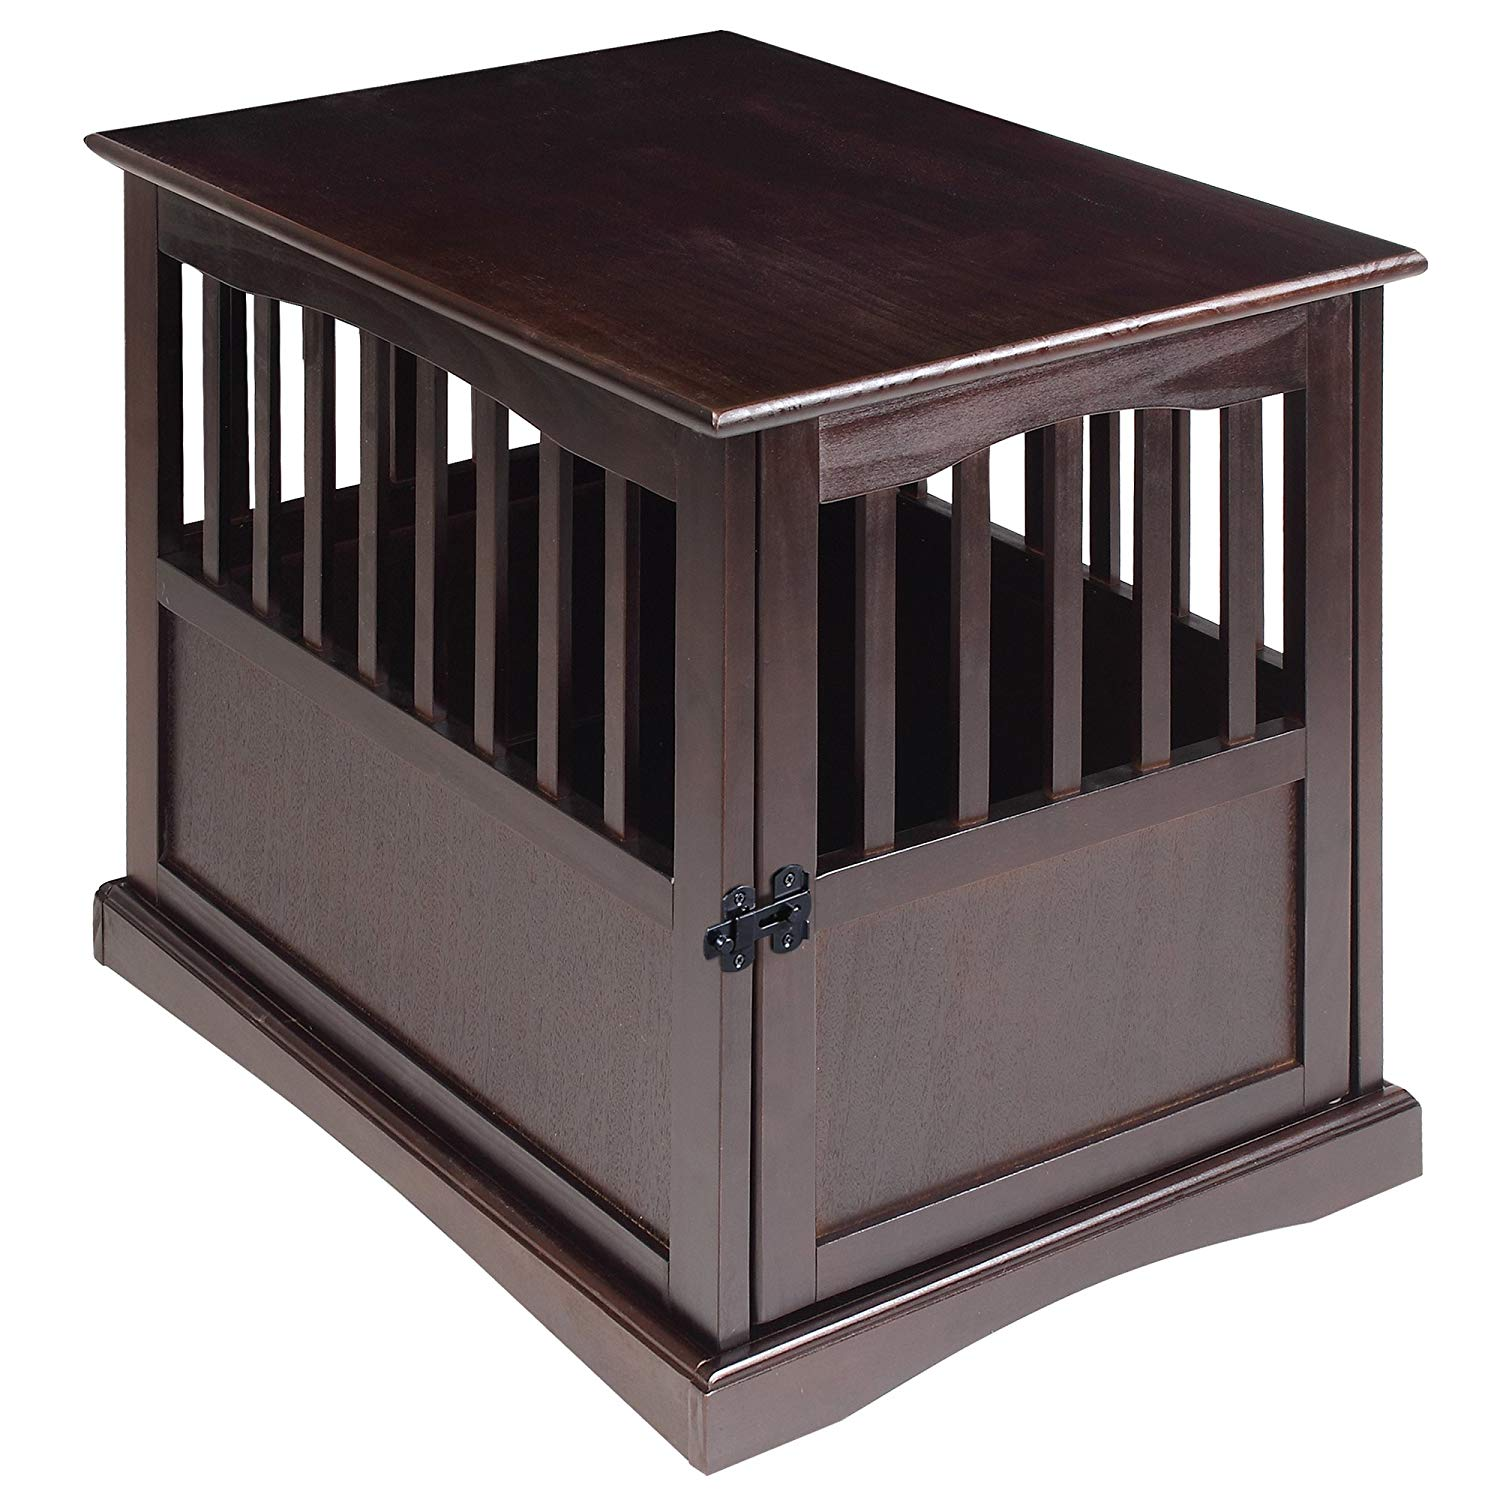 7. Casual Home Wooden Pet Crate